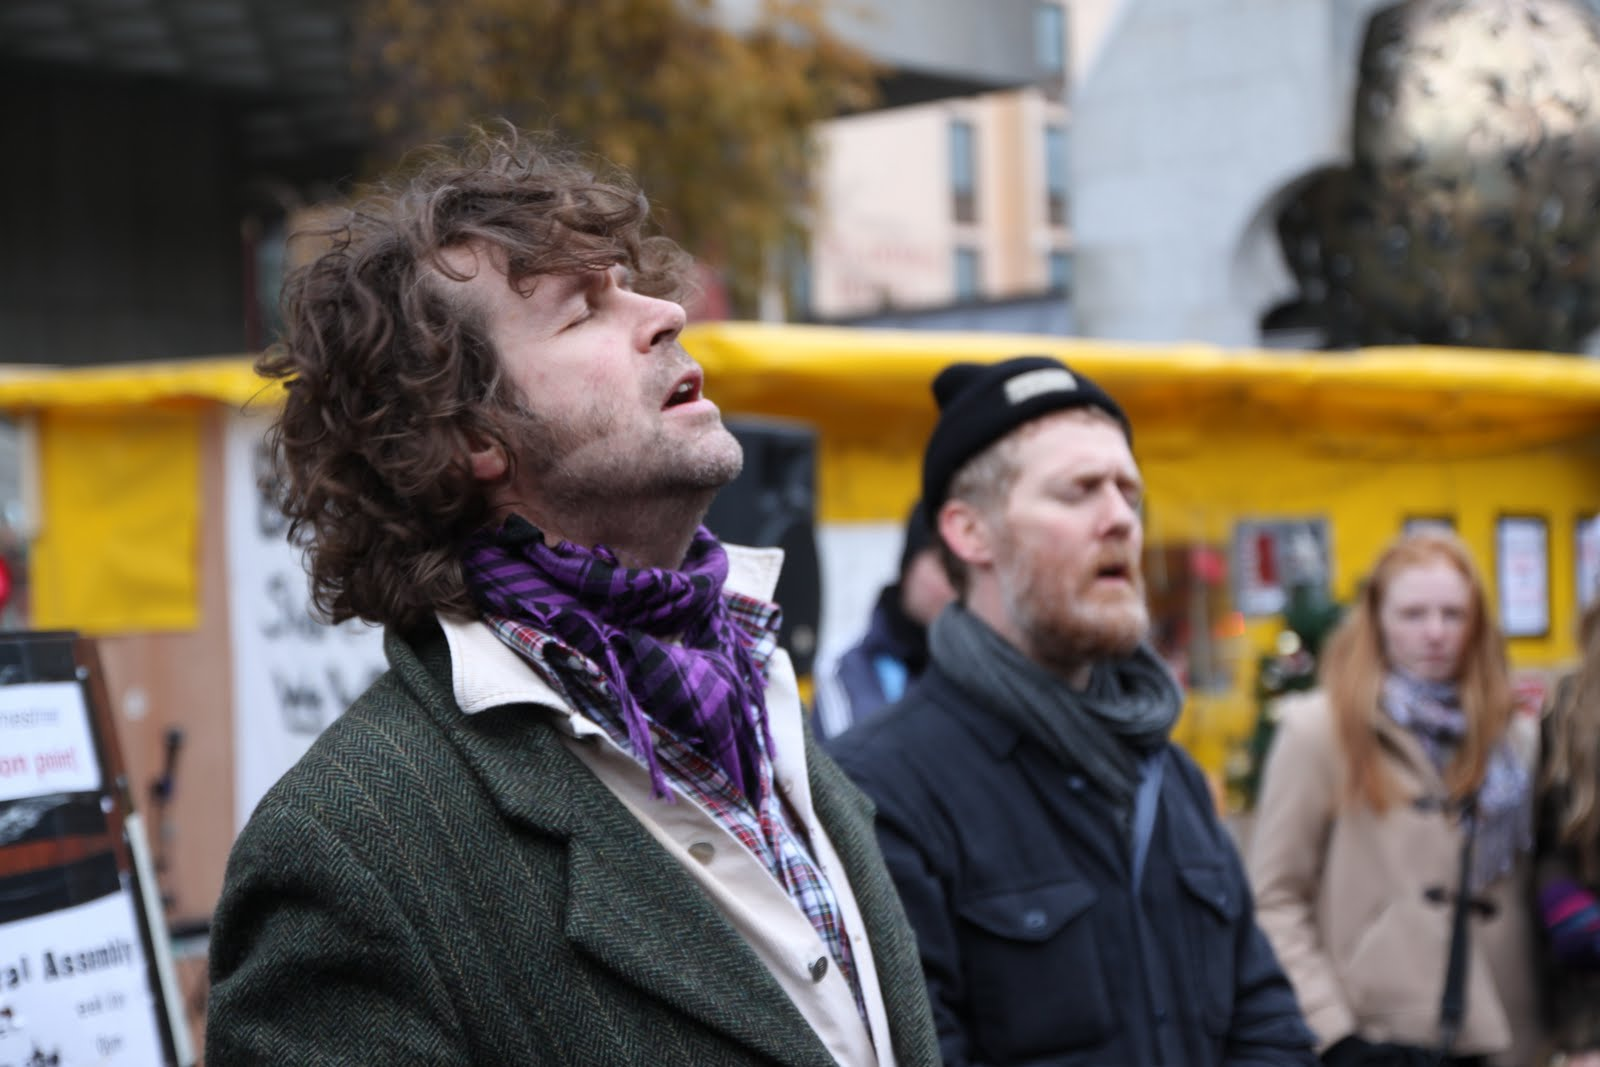 Liam Ó Maonlaí and Glen Hansard at Occupy Dame Street in Dublin